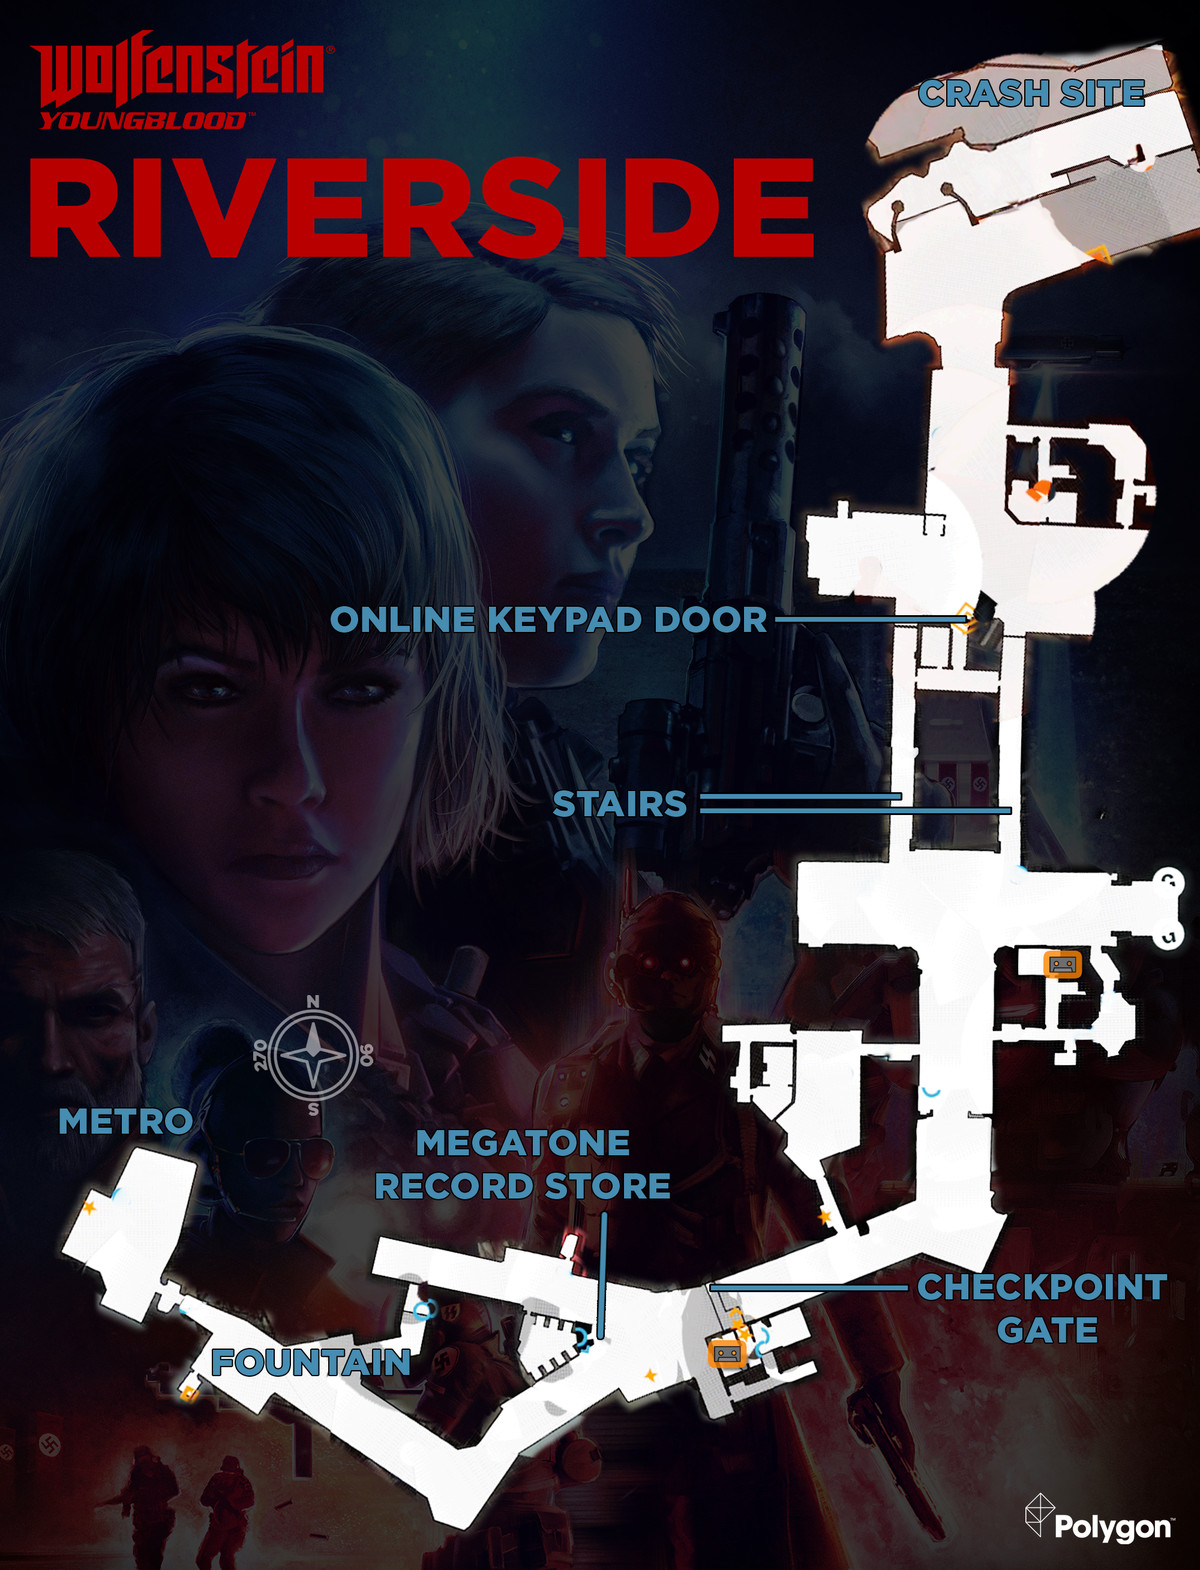 Wolfenstein: Youngblood Riverside map with Cassette Tape locations